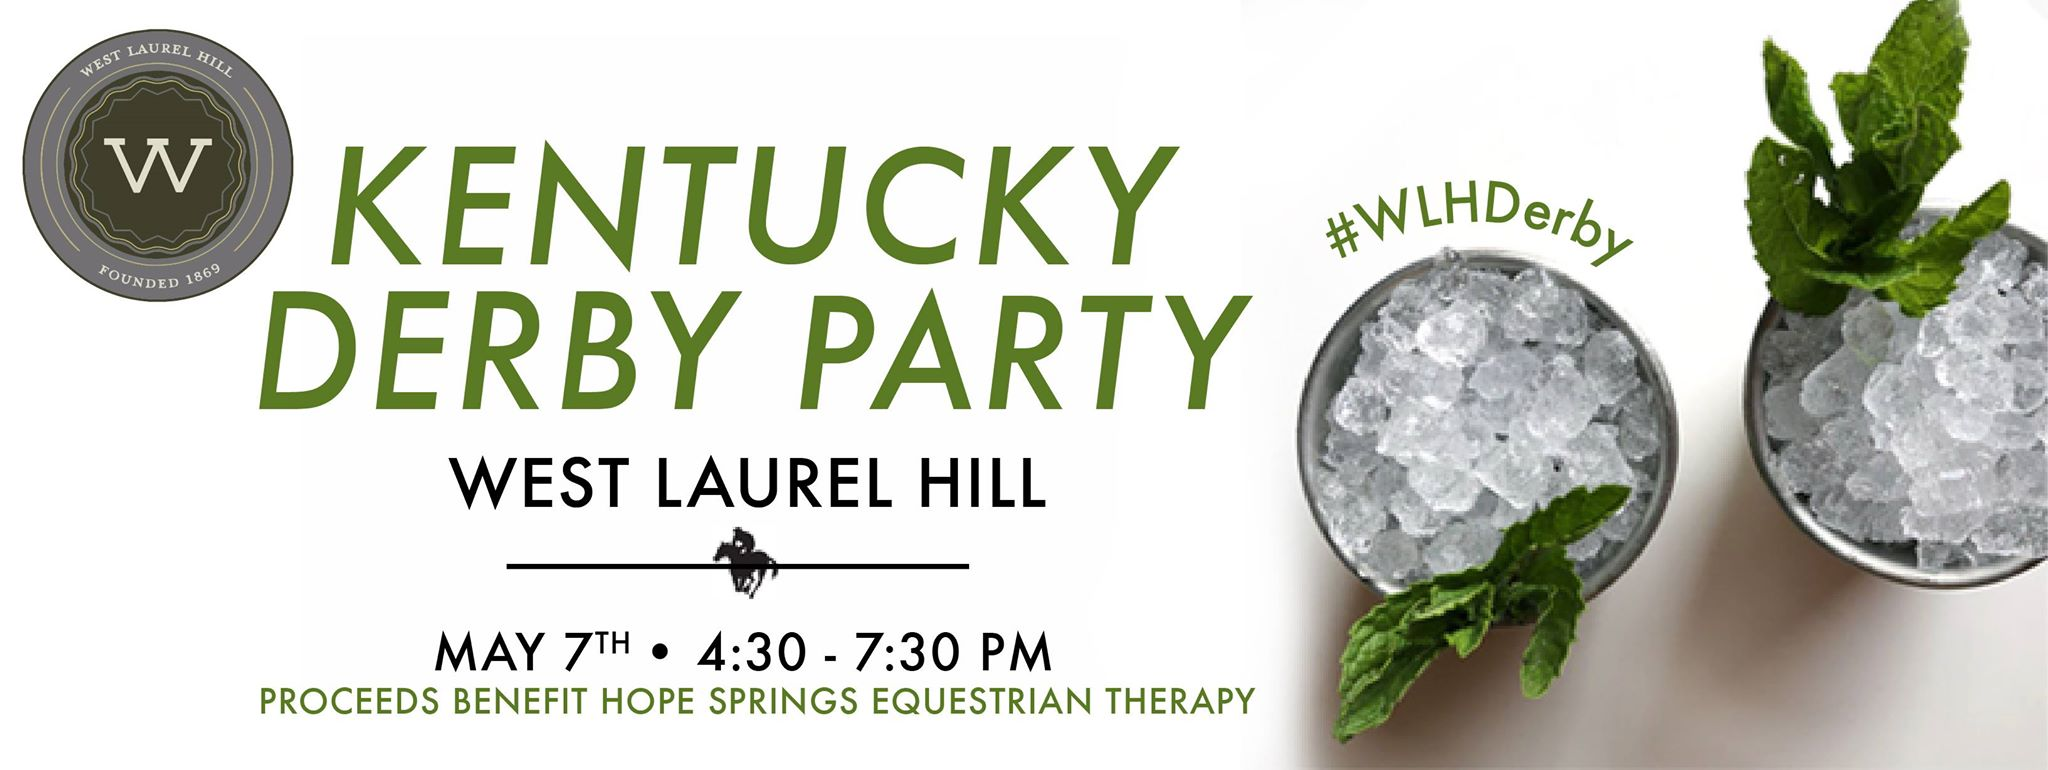 The 2016 Kentucky Derby Party at West Laurel Hill